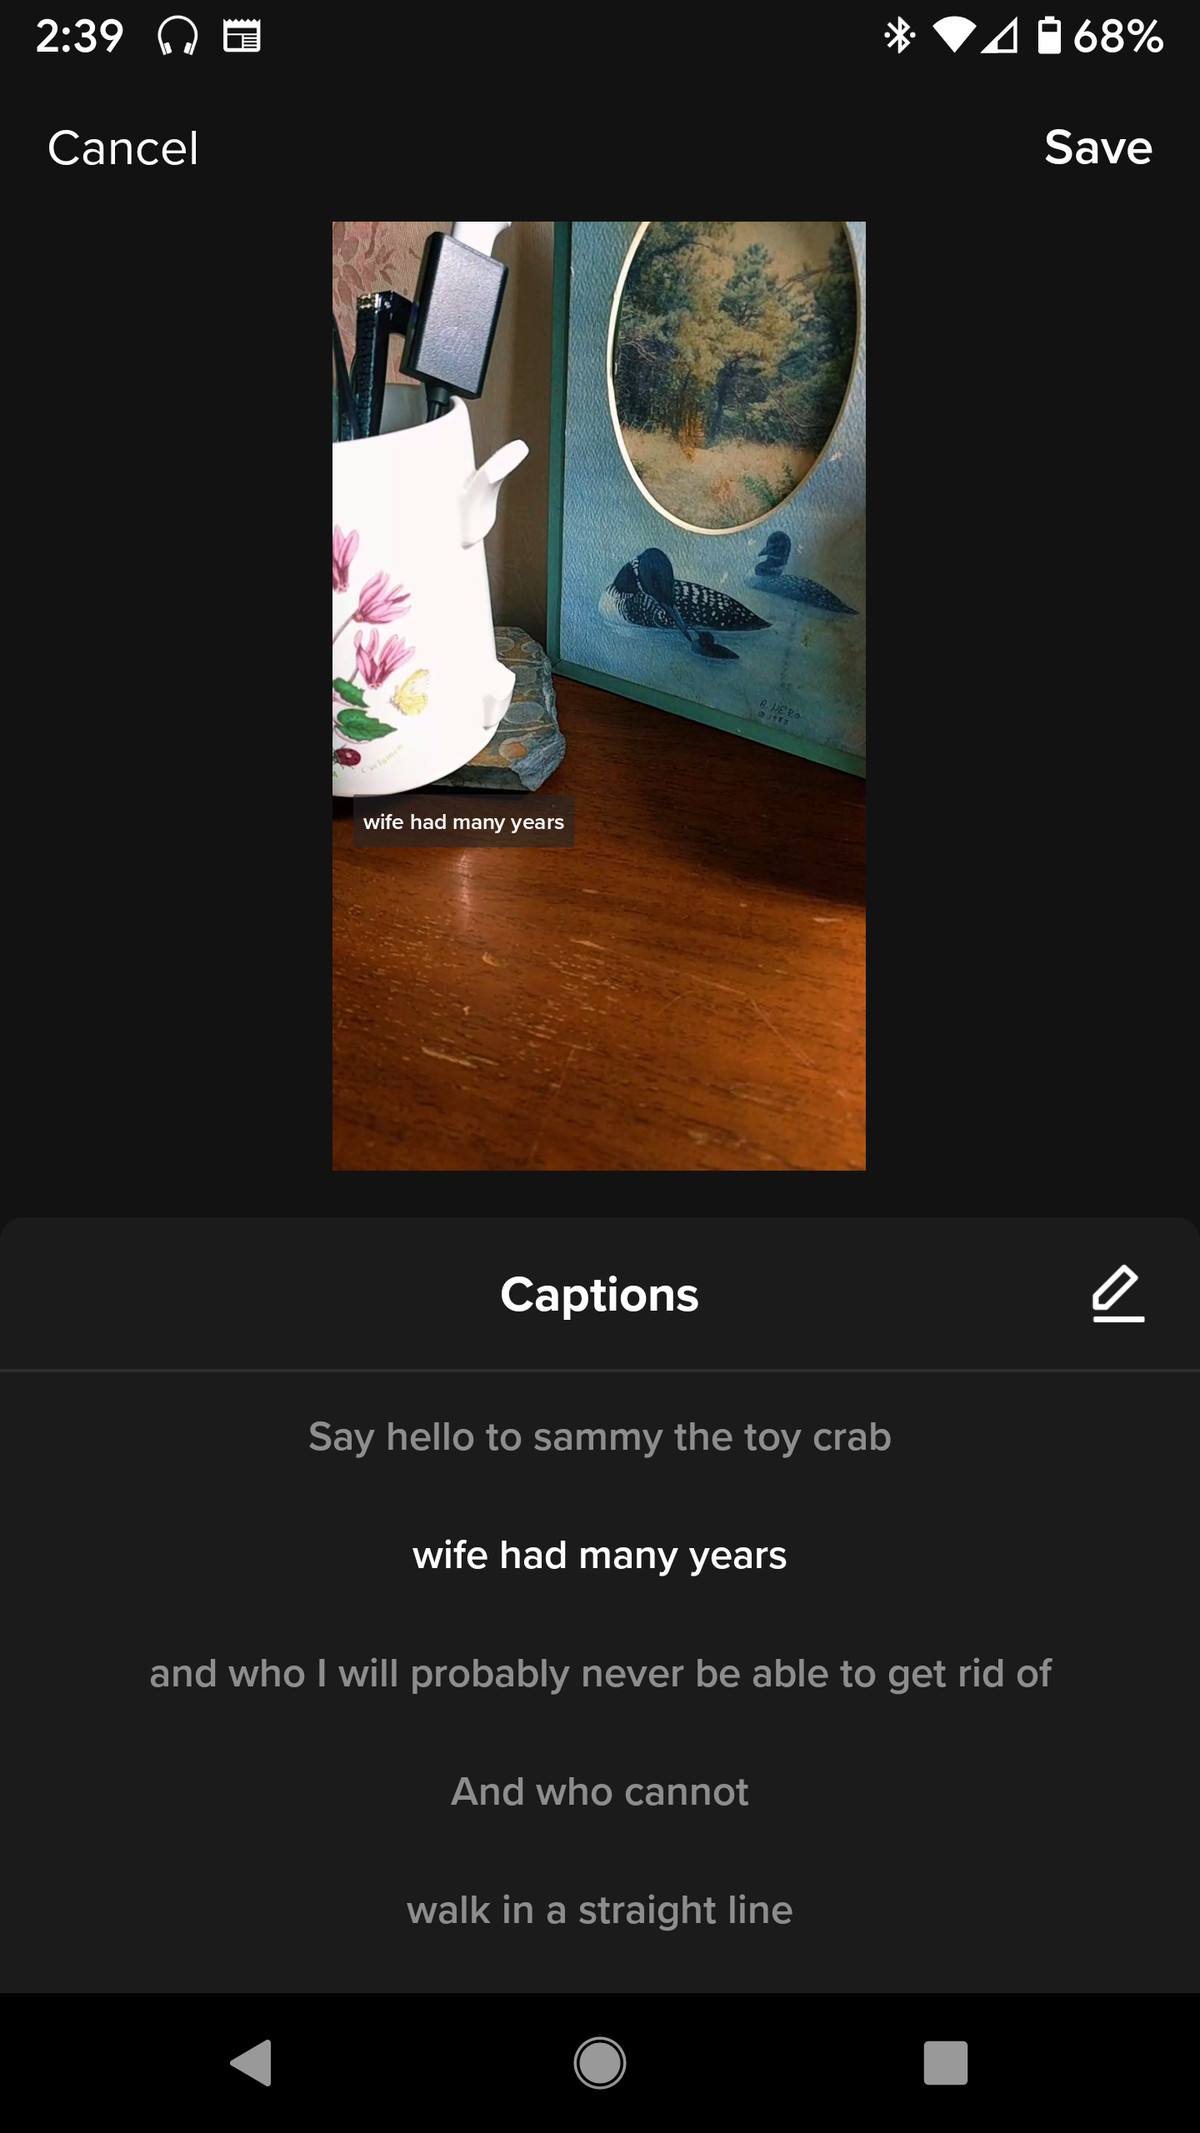 The Captions screen will show you what your captions will look like.